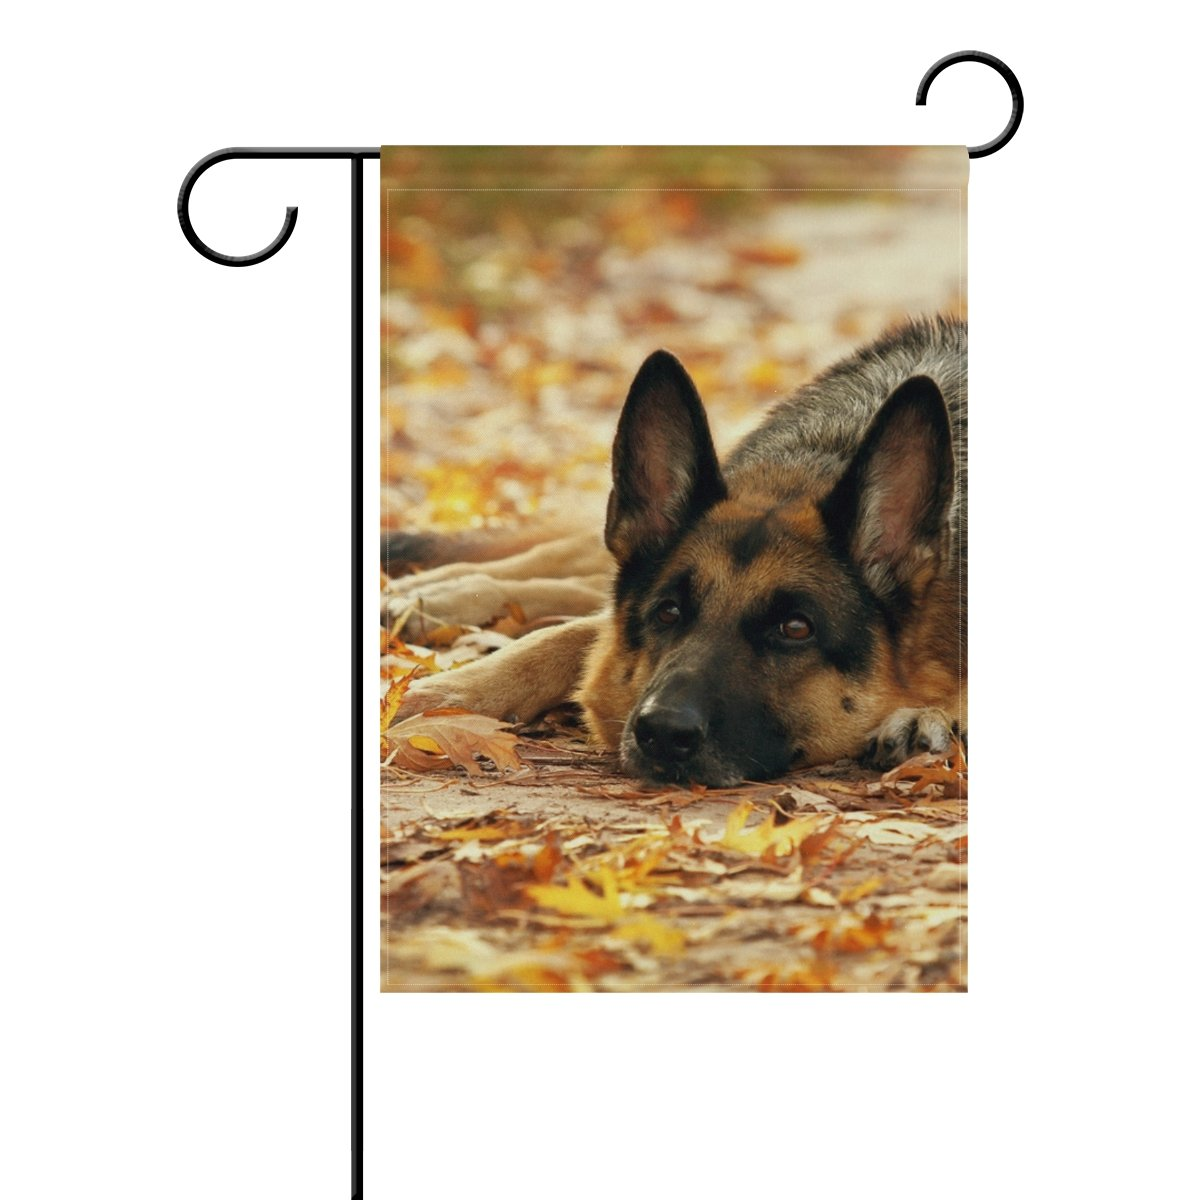 My Daily German Shepherd Dog Autumn Leaves Decorative Double Sided Garden Flag 12 x 18 inch